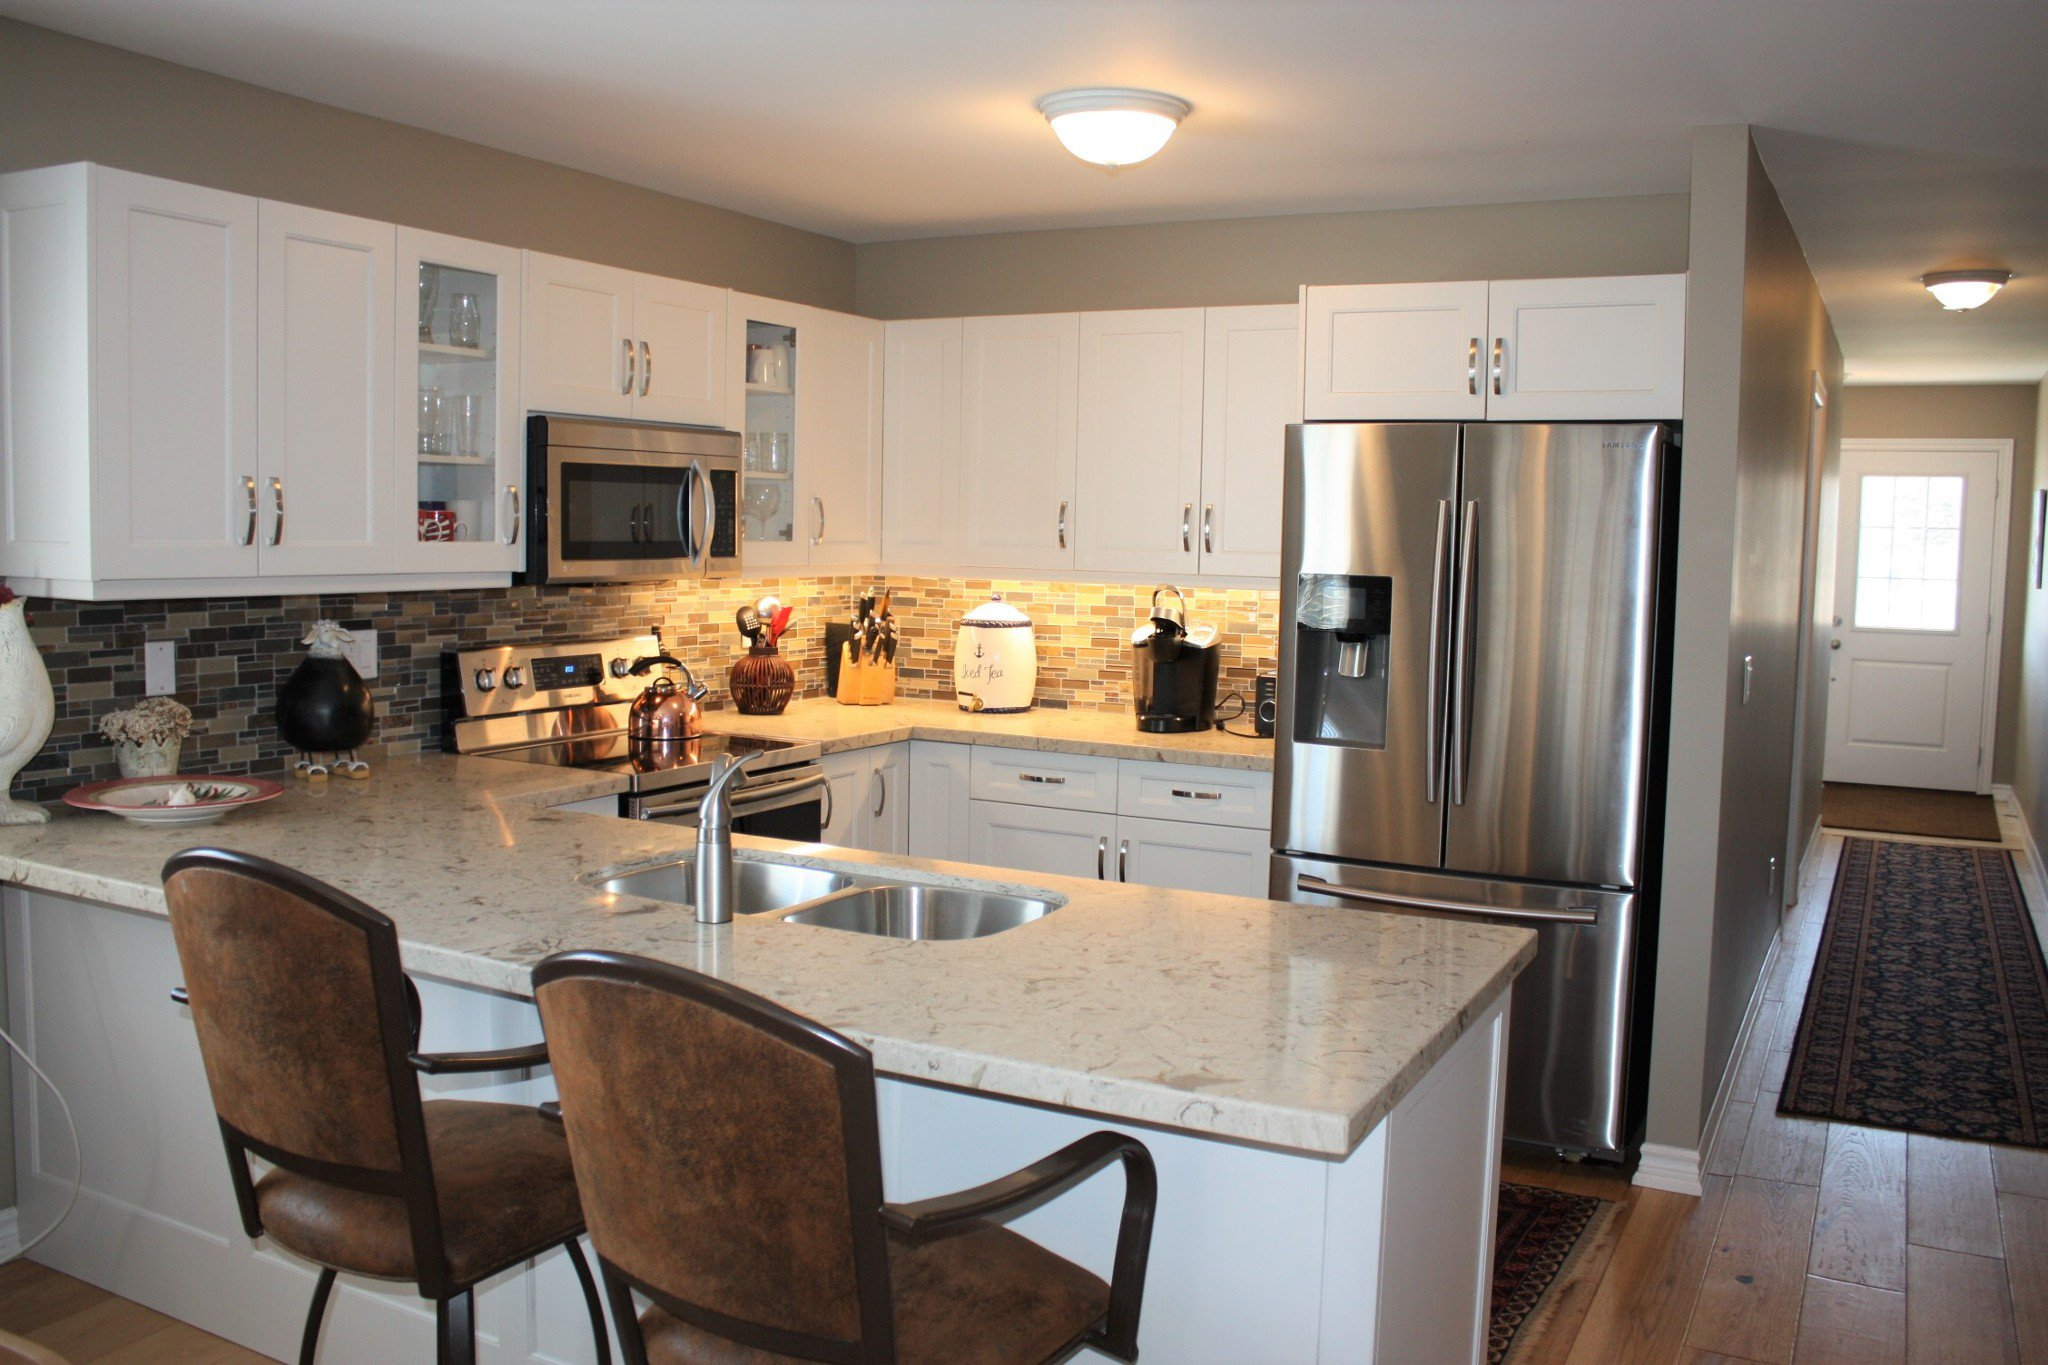 Photo 9: Photos: 706 Ontario Street in Cobourg: Residential Attached for sale : MLS®# 254262